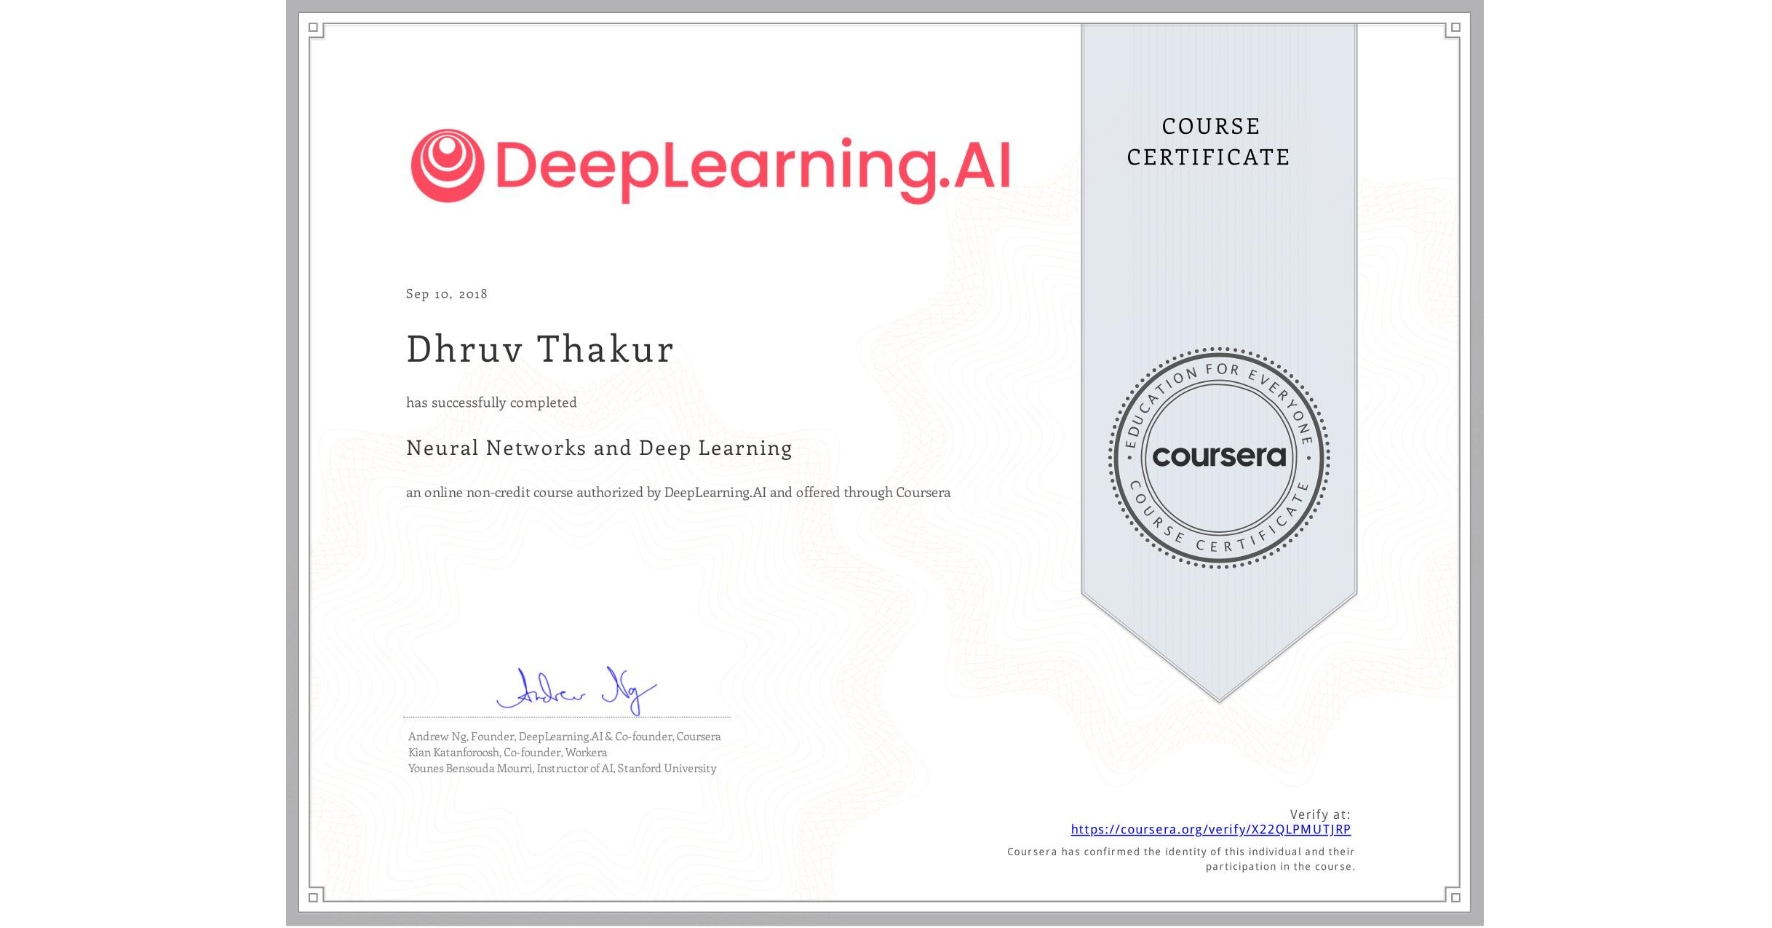 View certificate for Dhruv Thakur, Neural Networks and Deep Learning, an online non-credit course authorized by DeepLearning.AI and offered through Coursera